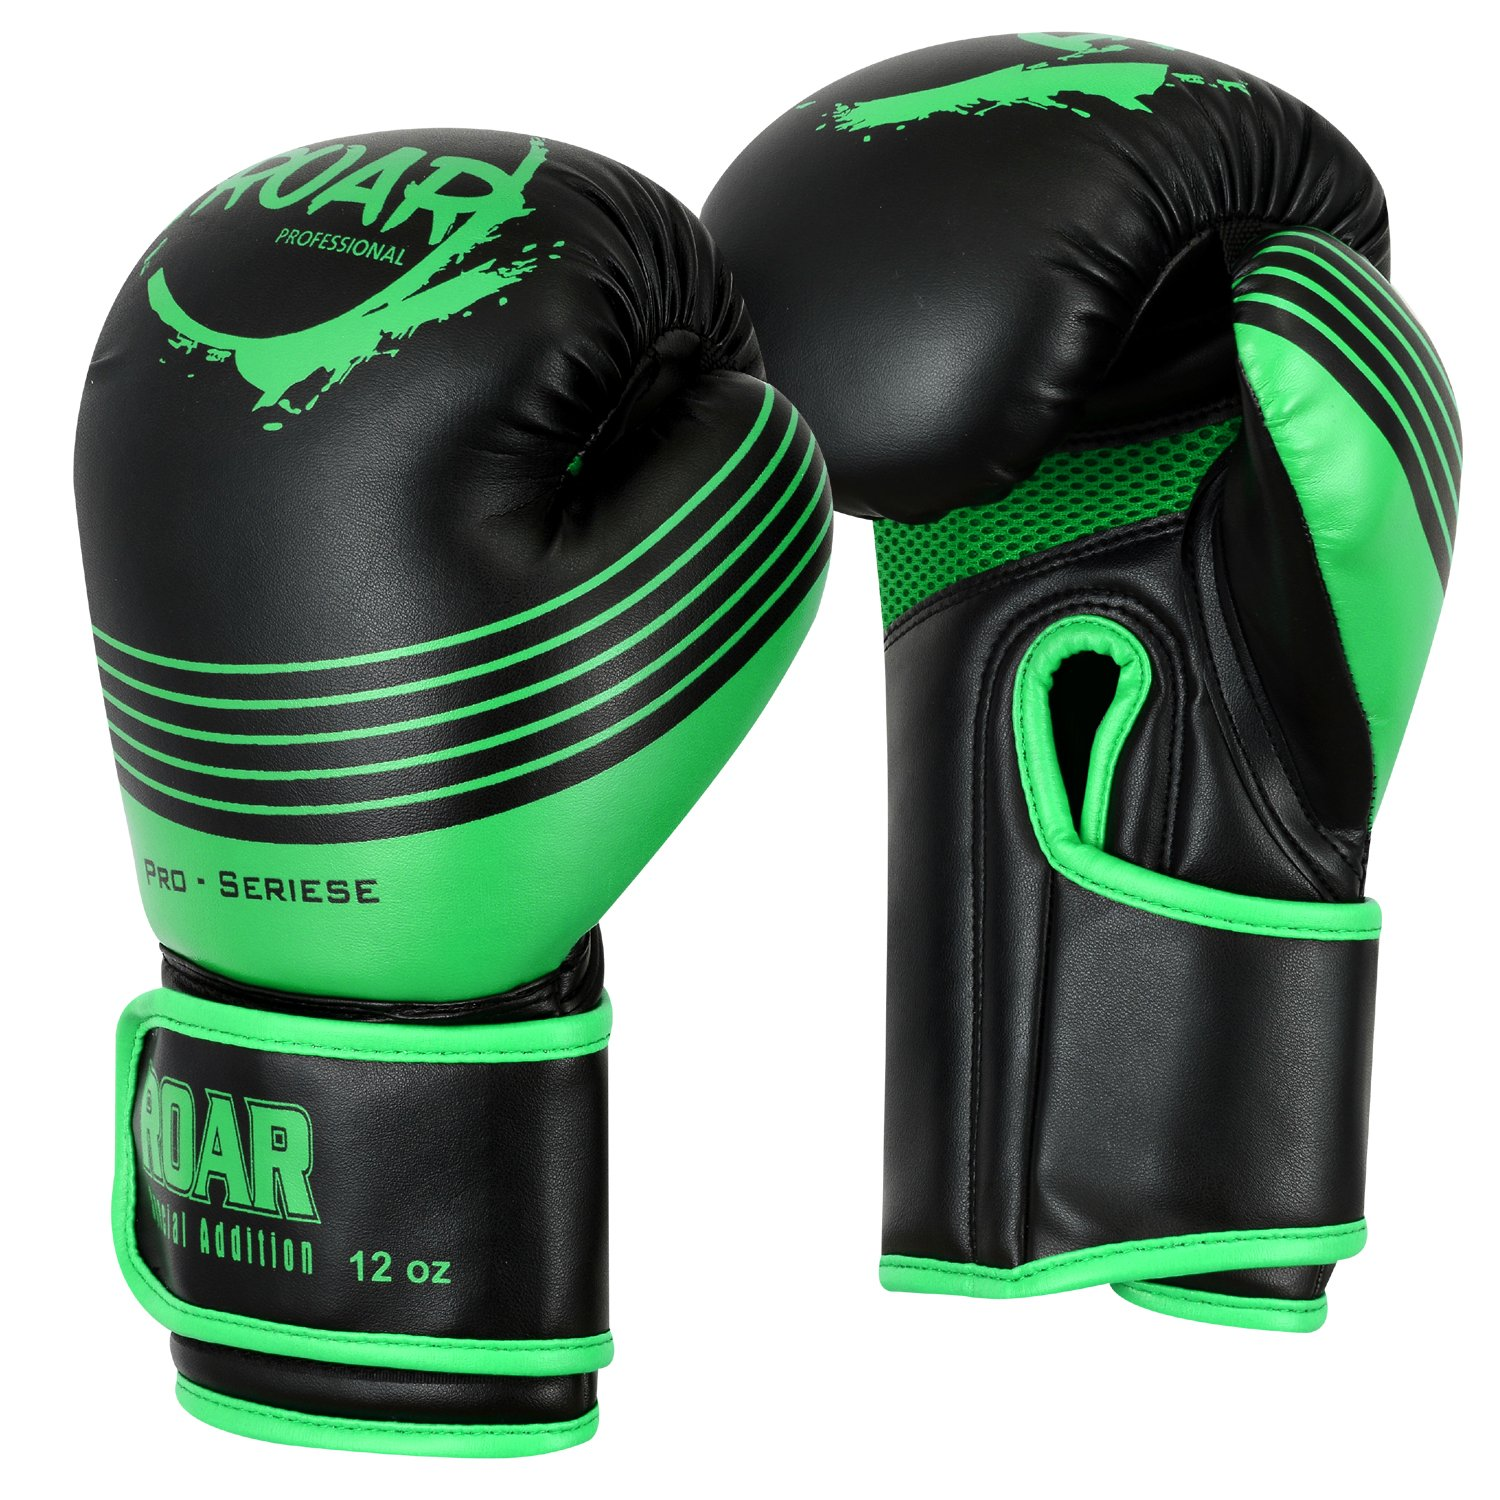 Pro Power Hook and Jab Pads